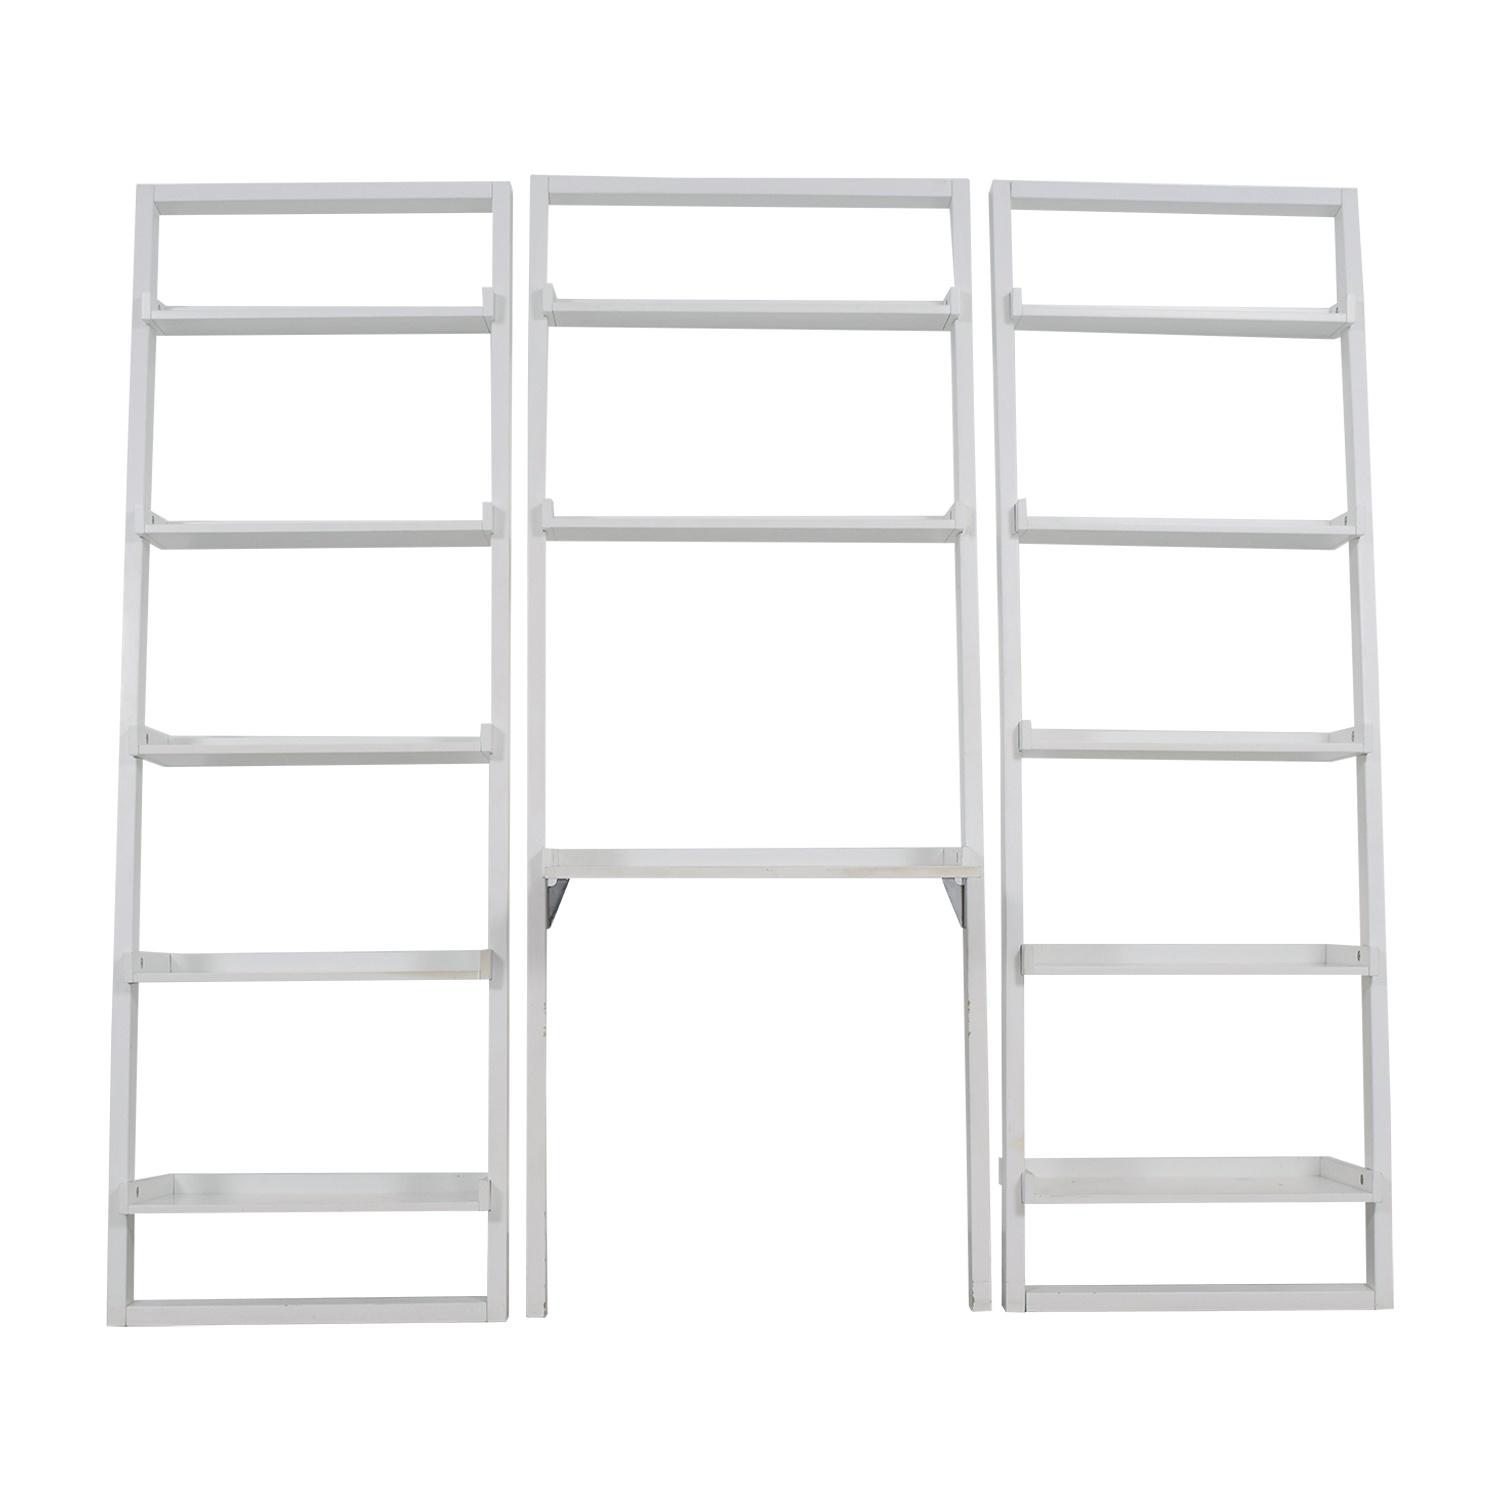 Crate & Barrel Crate & Barrel Leaning White Bookshelf dimensions